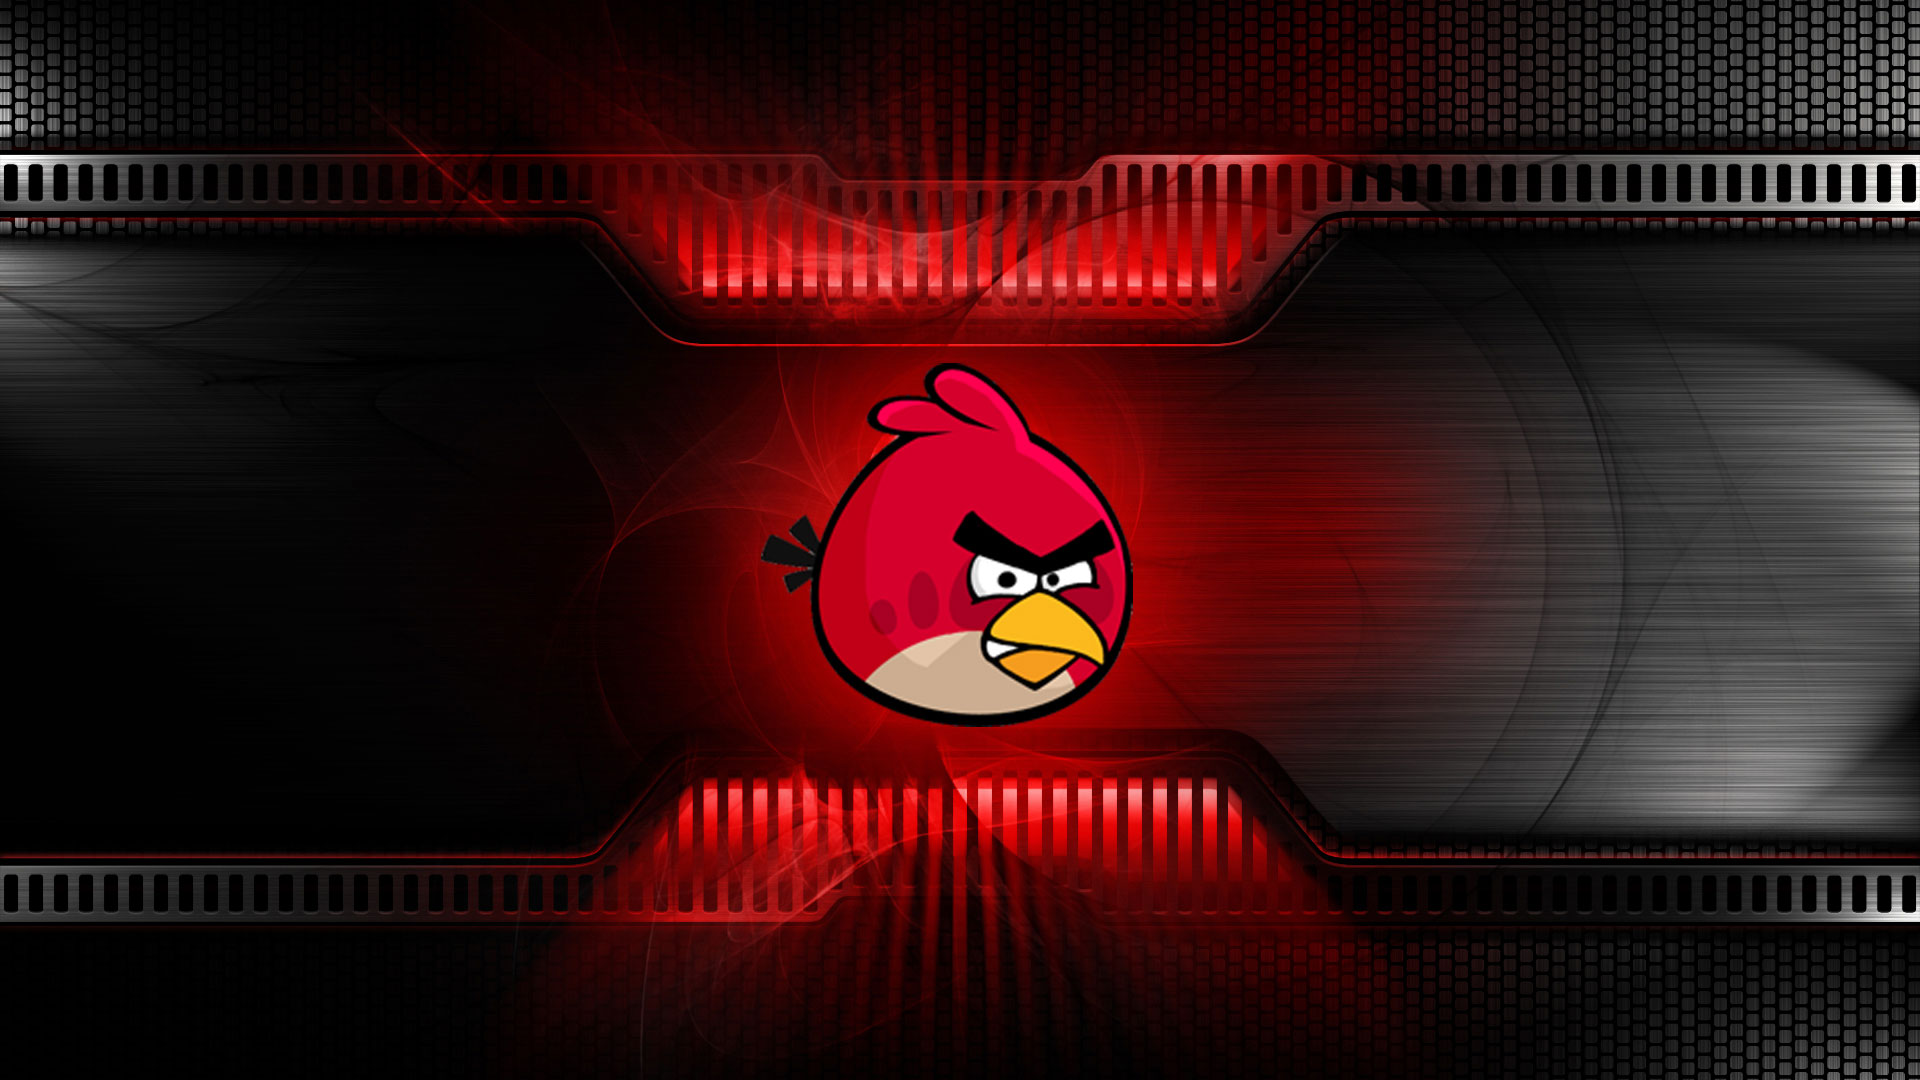 Good Wallpaper Angry Mobile Hd - nbFiej  Pictures_55342      .jpg